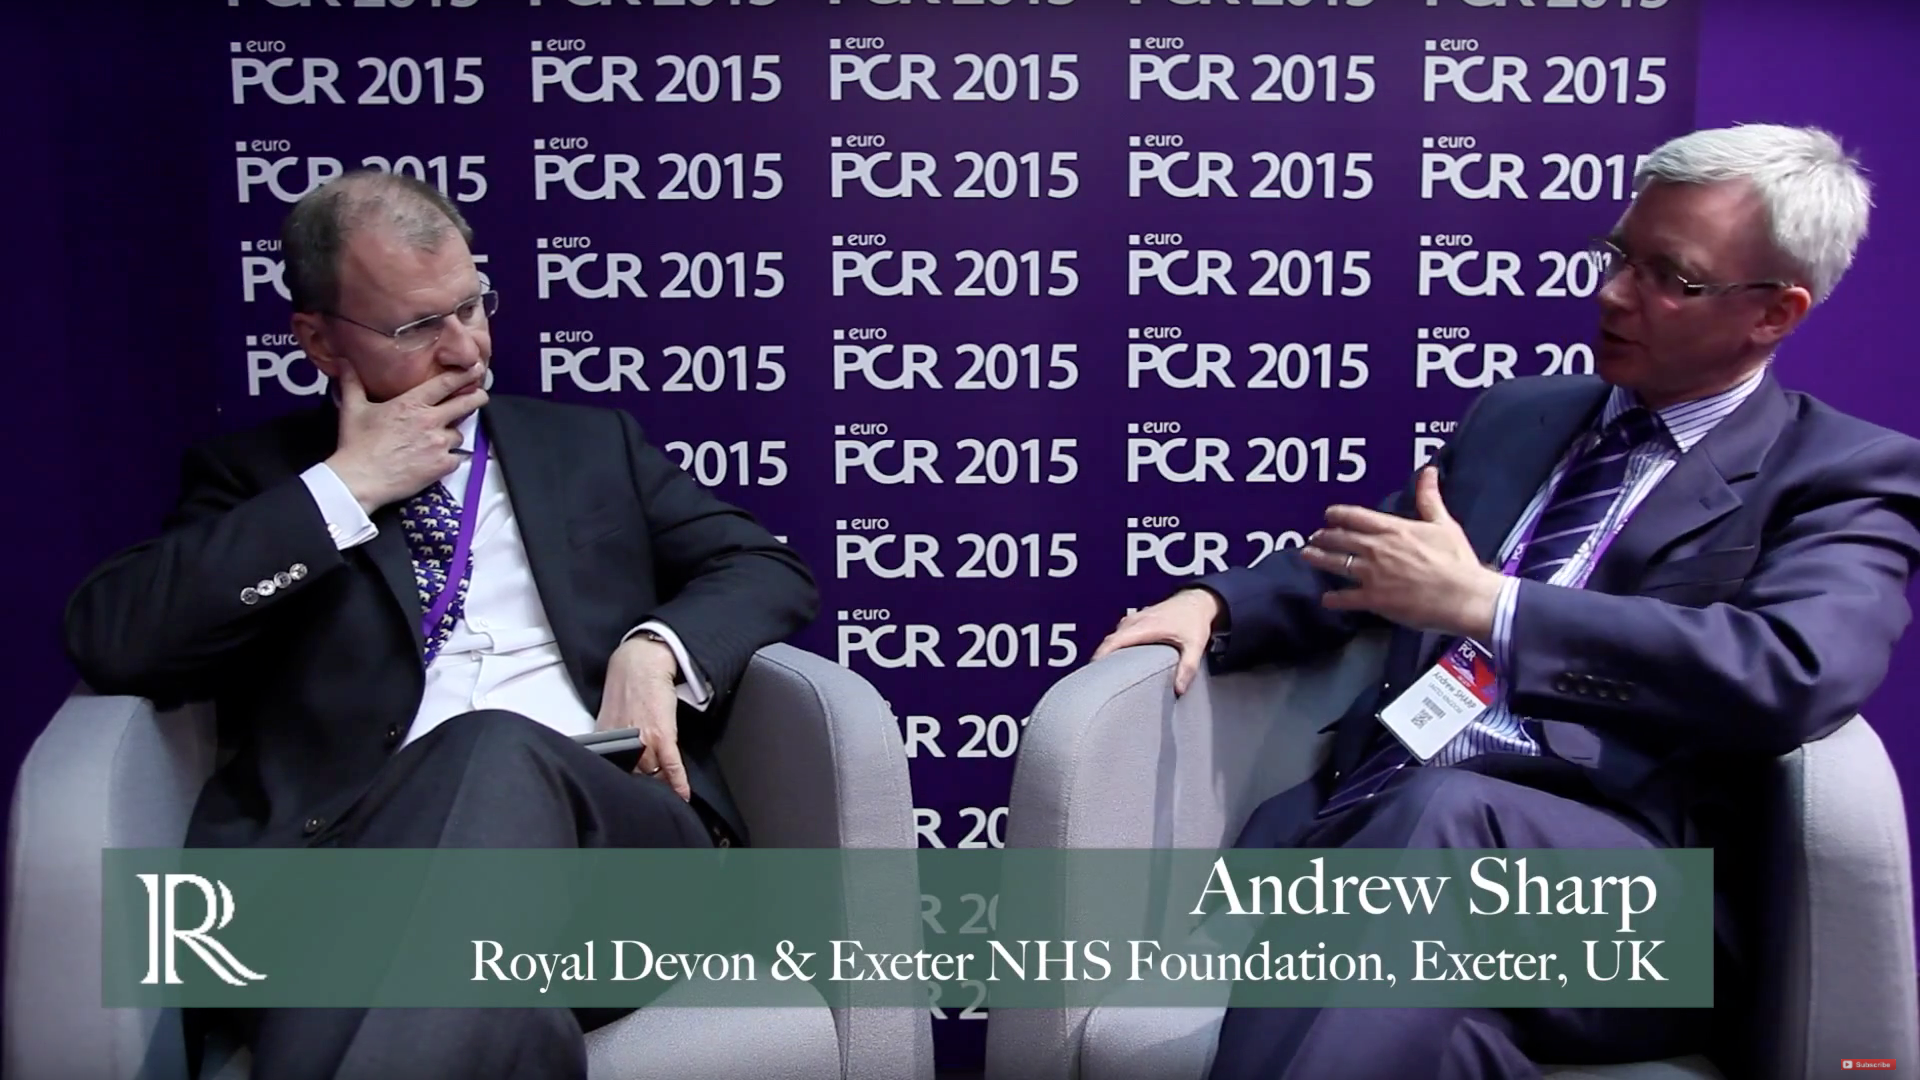 EuroPCR 2015: Update On IFR And FFR With Simon Kennon And Andrew Sharp